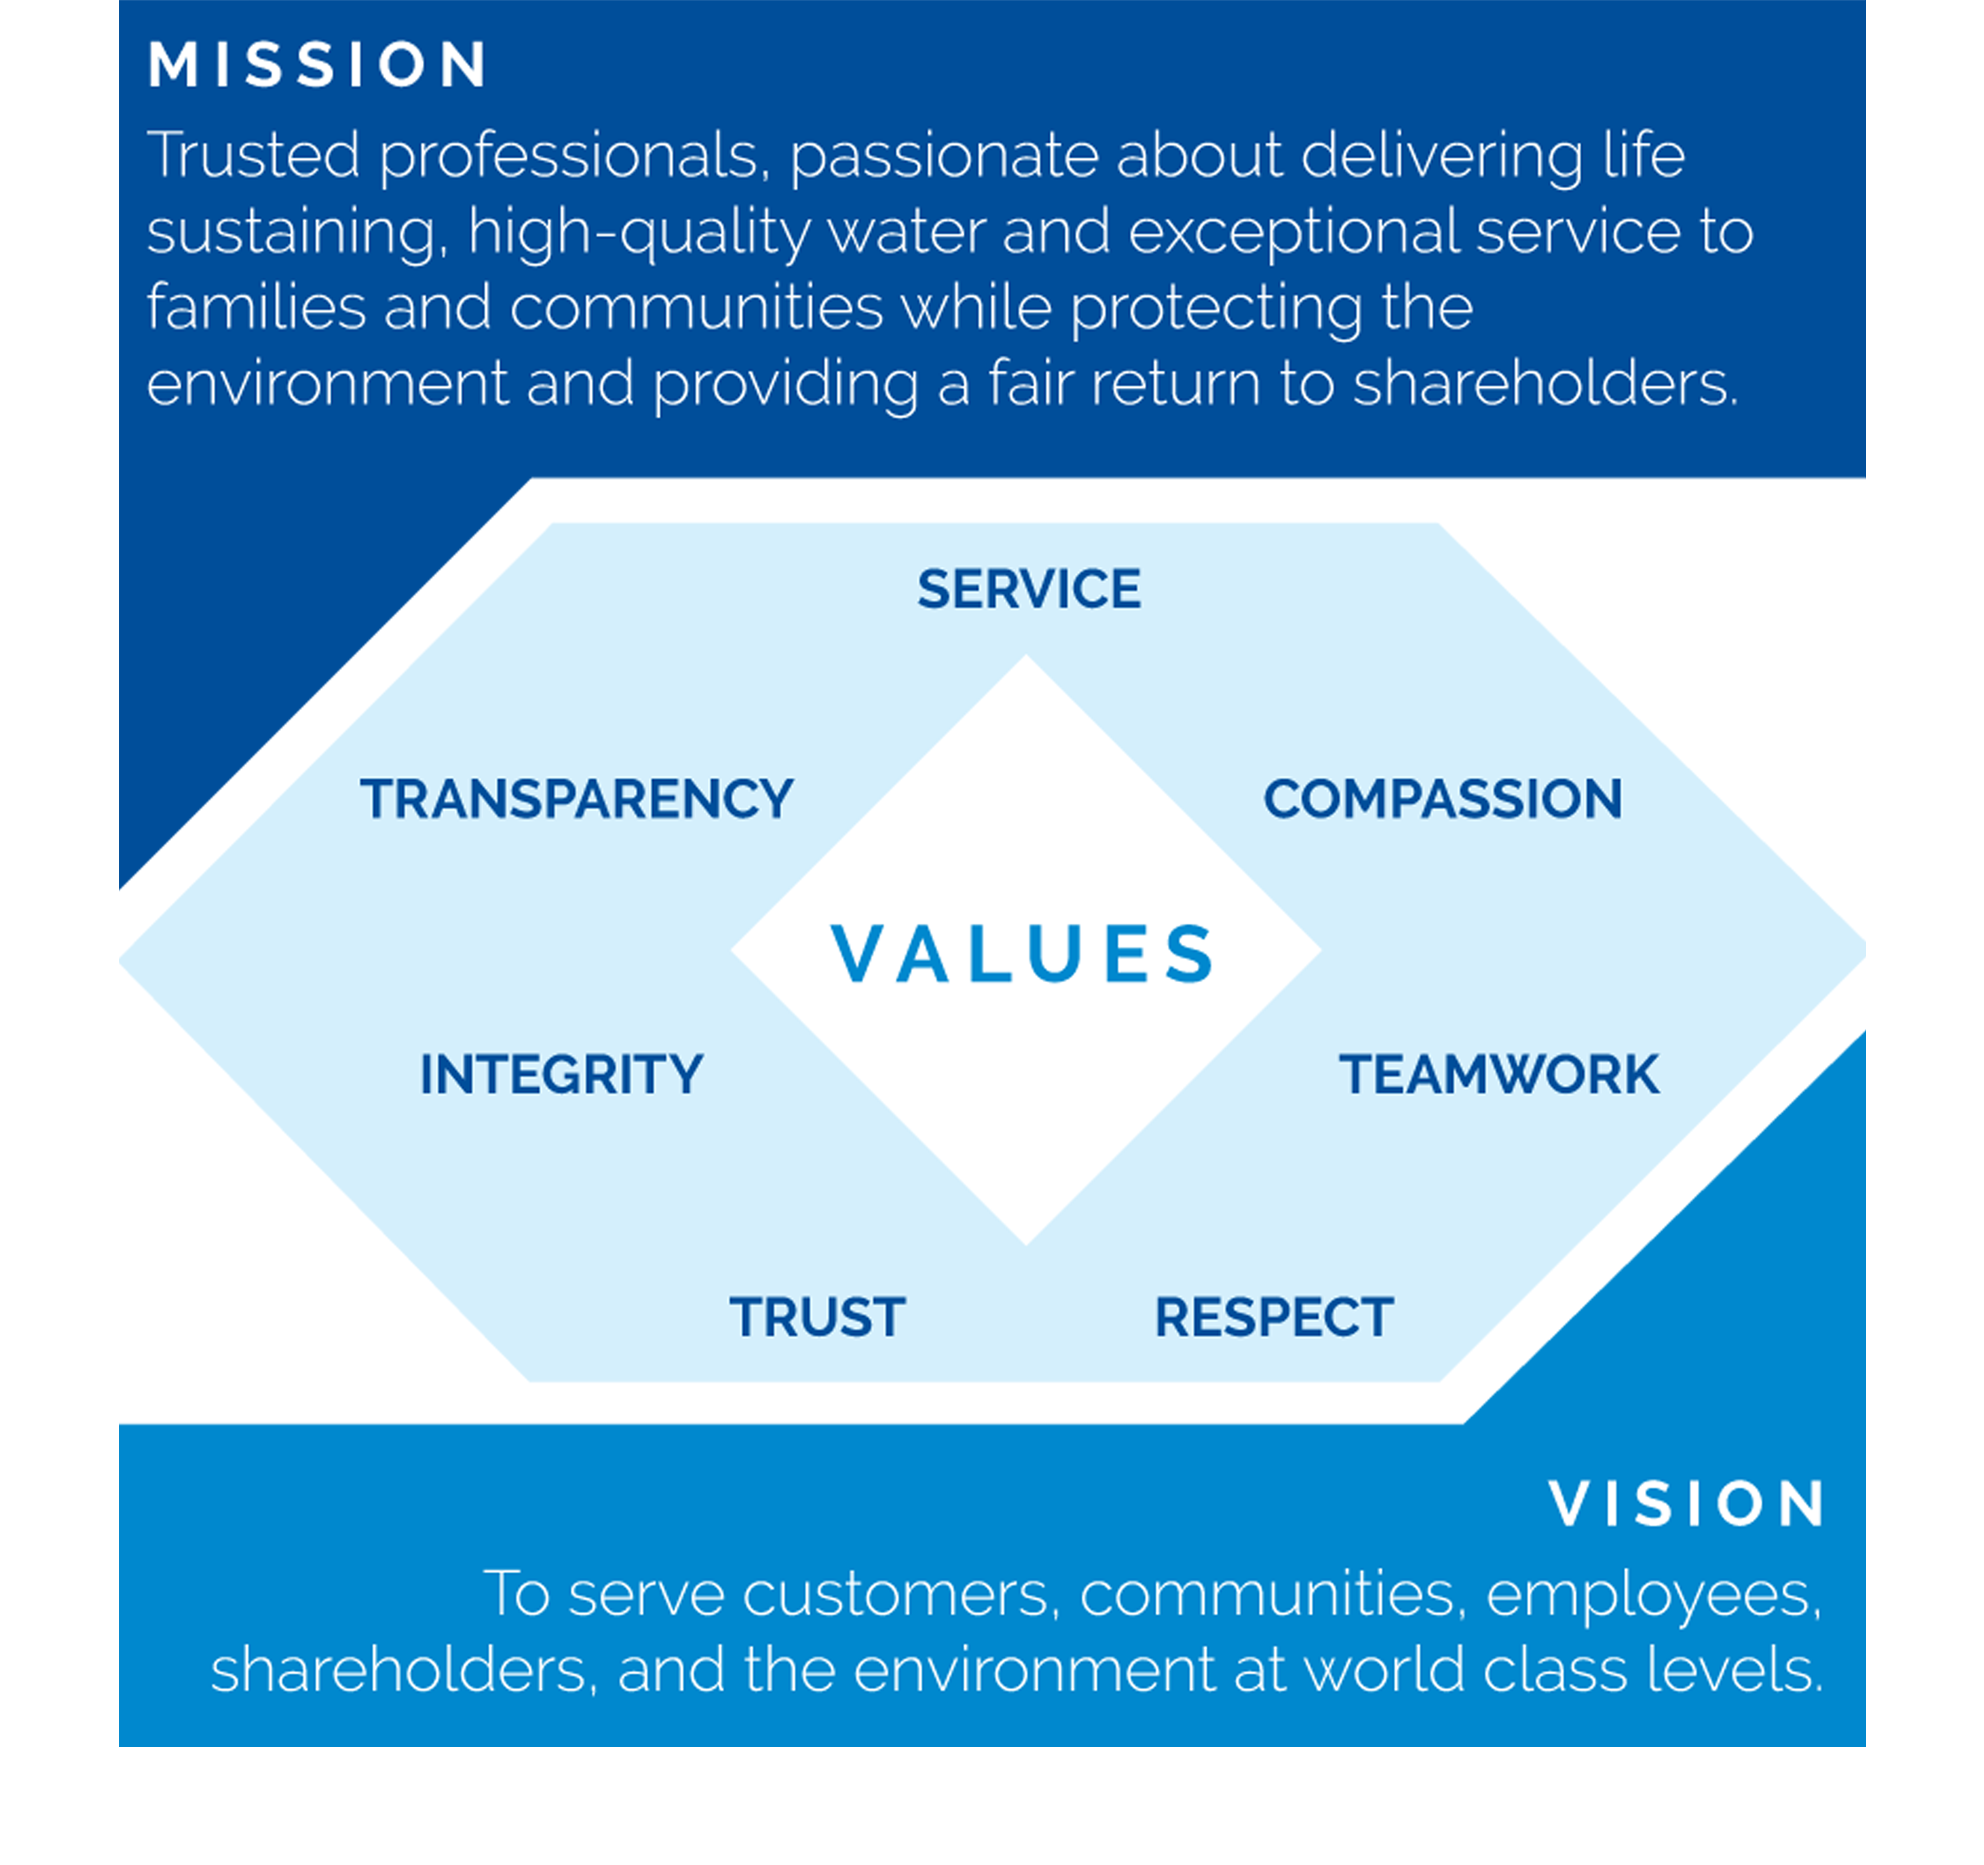 San Jose Water's Mission Values and Vision. Trusted professionals, passionate about delivering life sustaining, high-quality water and exceptional service to families and communities while protecting the environment and providing a fair return to shareholders. San Jose Water's values are service, compassion, teamwork. respect, trust, integrity, and transparency. San Jose Water's vision is to serve customers, communities. employees, shareholders and the environment at world class levels.